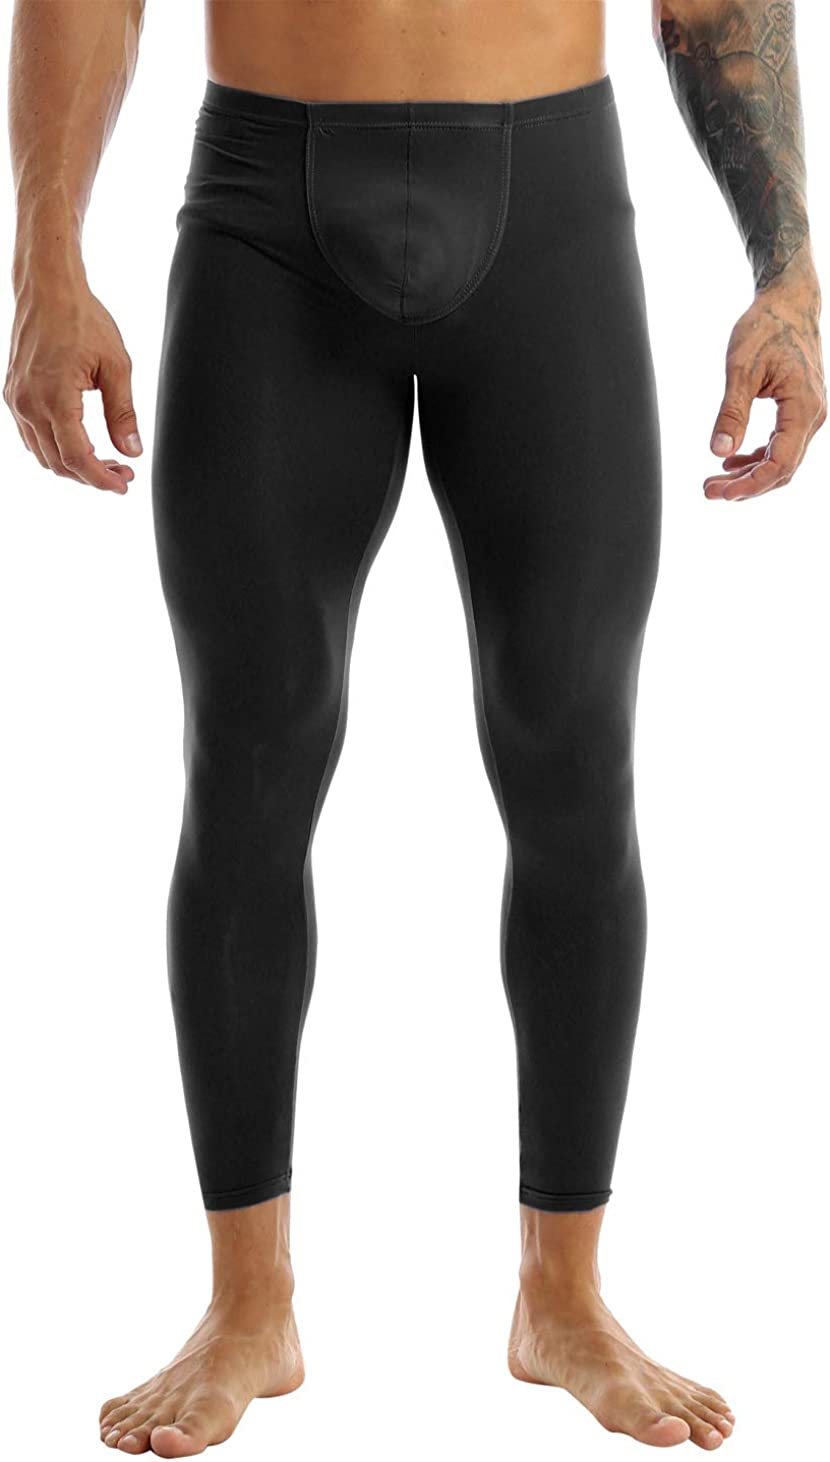 Yanarno Men's Ice Silk Separate Pouch Long Johns Underwear Male Thermal Pants Legging Tights